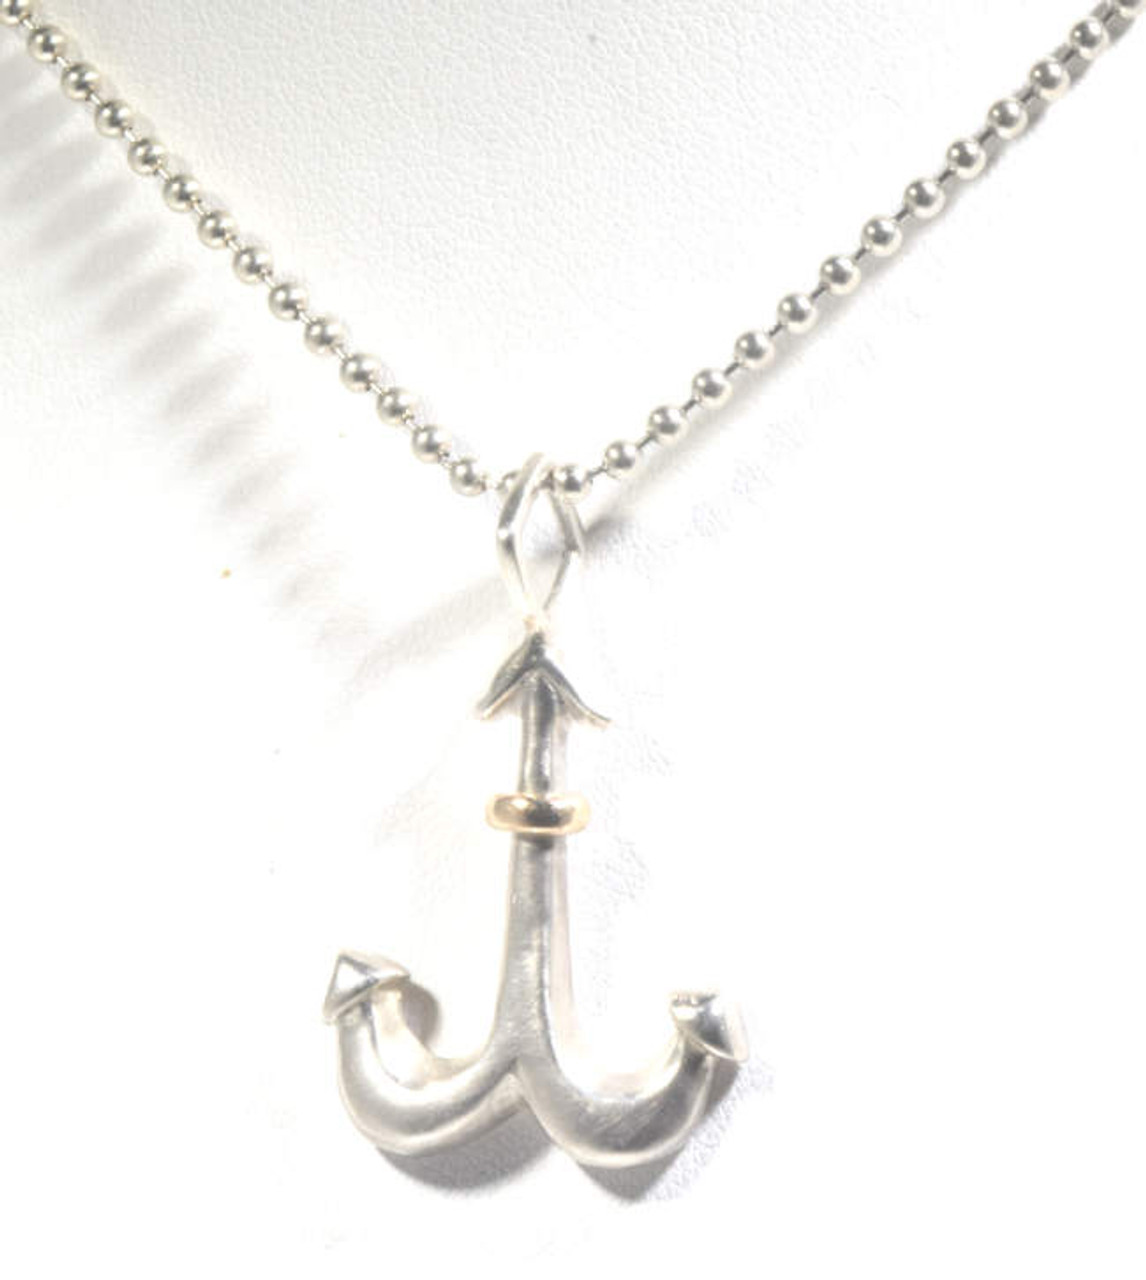 Anchor pendant the anchor pendant is hand crafted in portland maine the anchor is sterling silver aloadofball Images